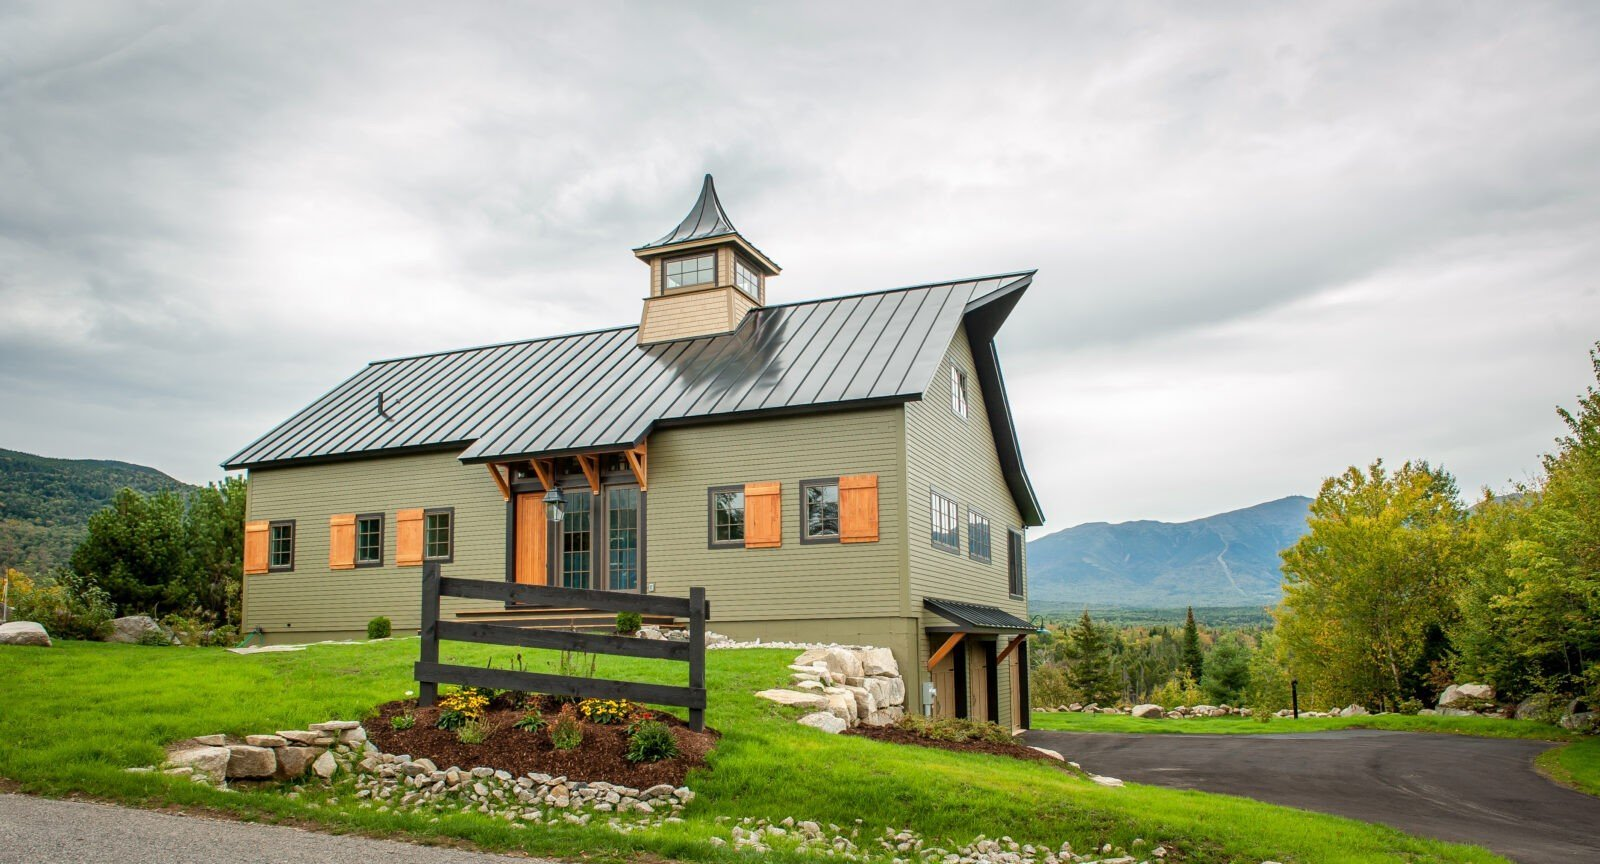 Top notch barn home plans from the ybh design team for Barn style floor plans